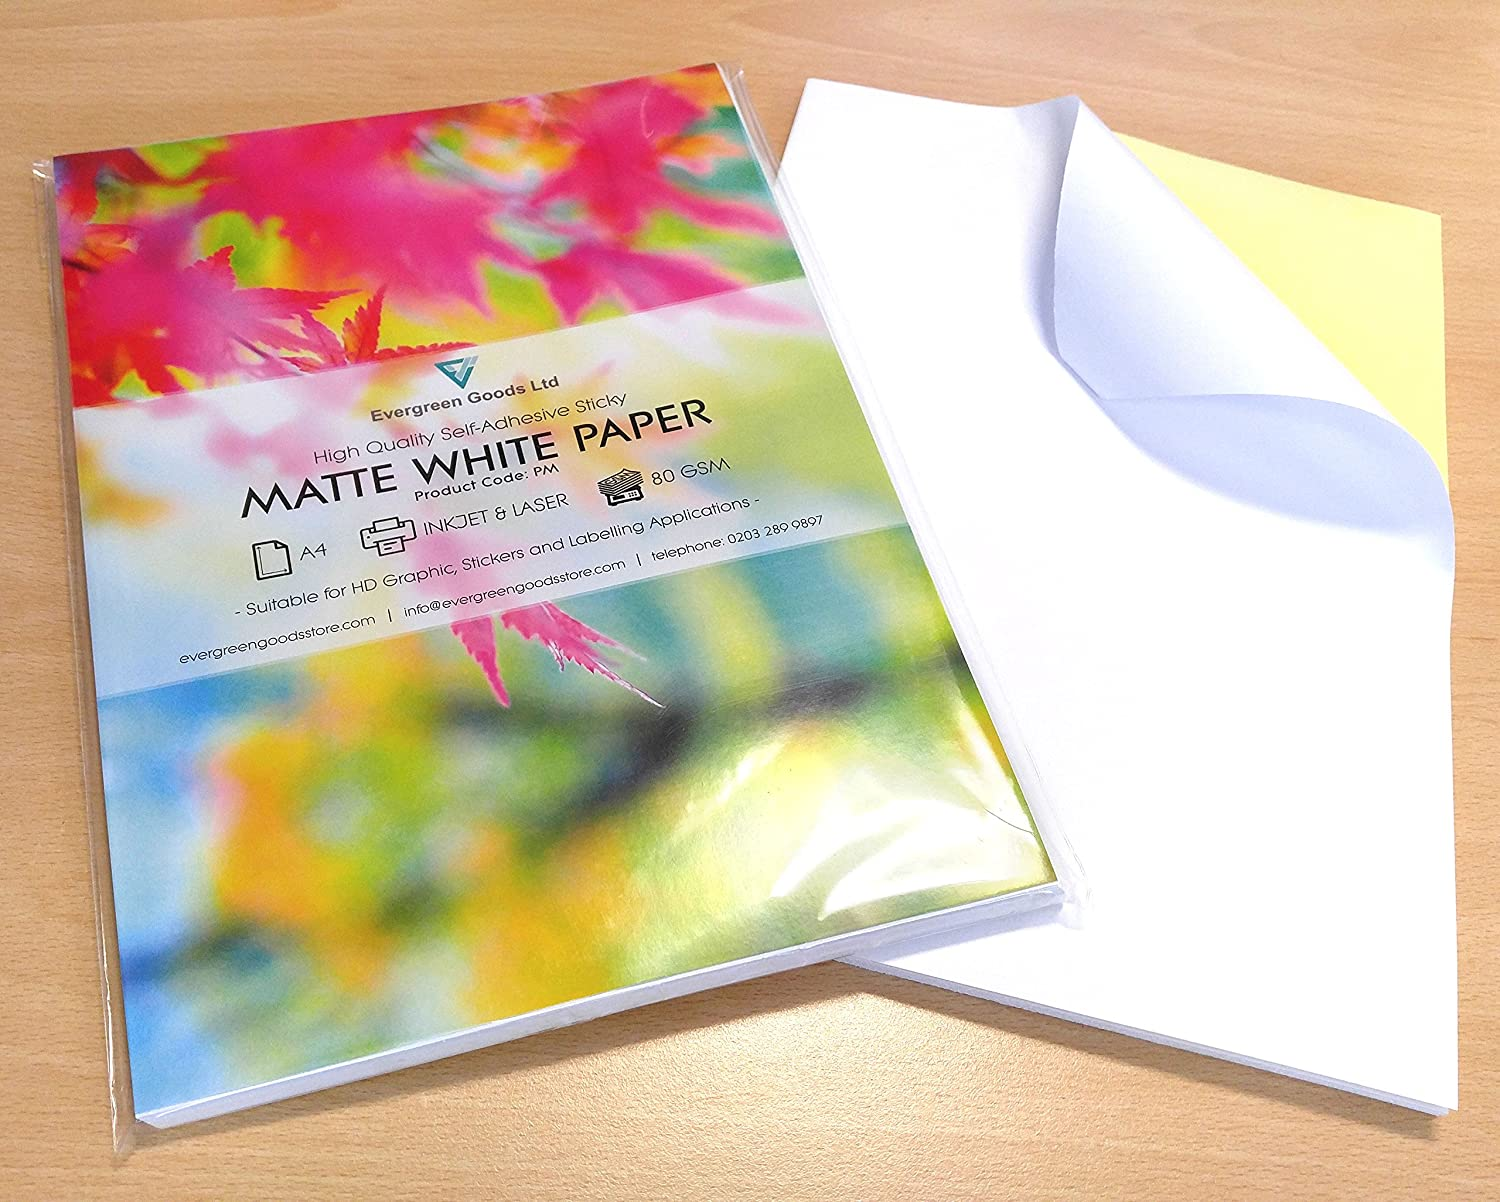 30 Sheets of Quality A4 White MATT Self Adhesive / Sticky Back Label Printing Paper Sheet Evergreen Goods